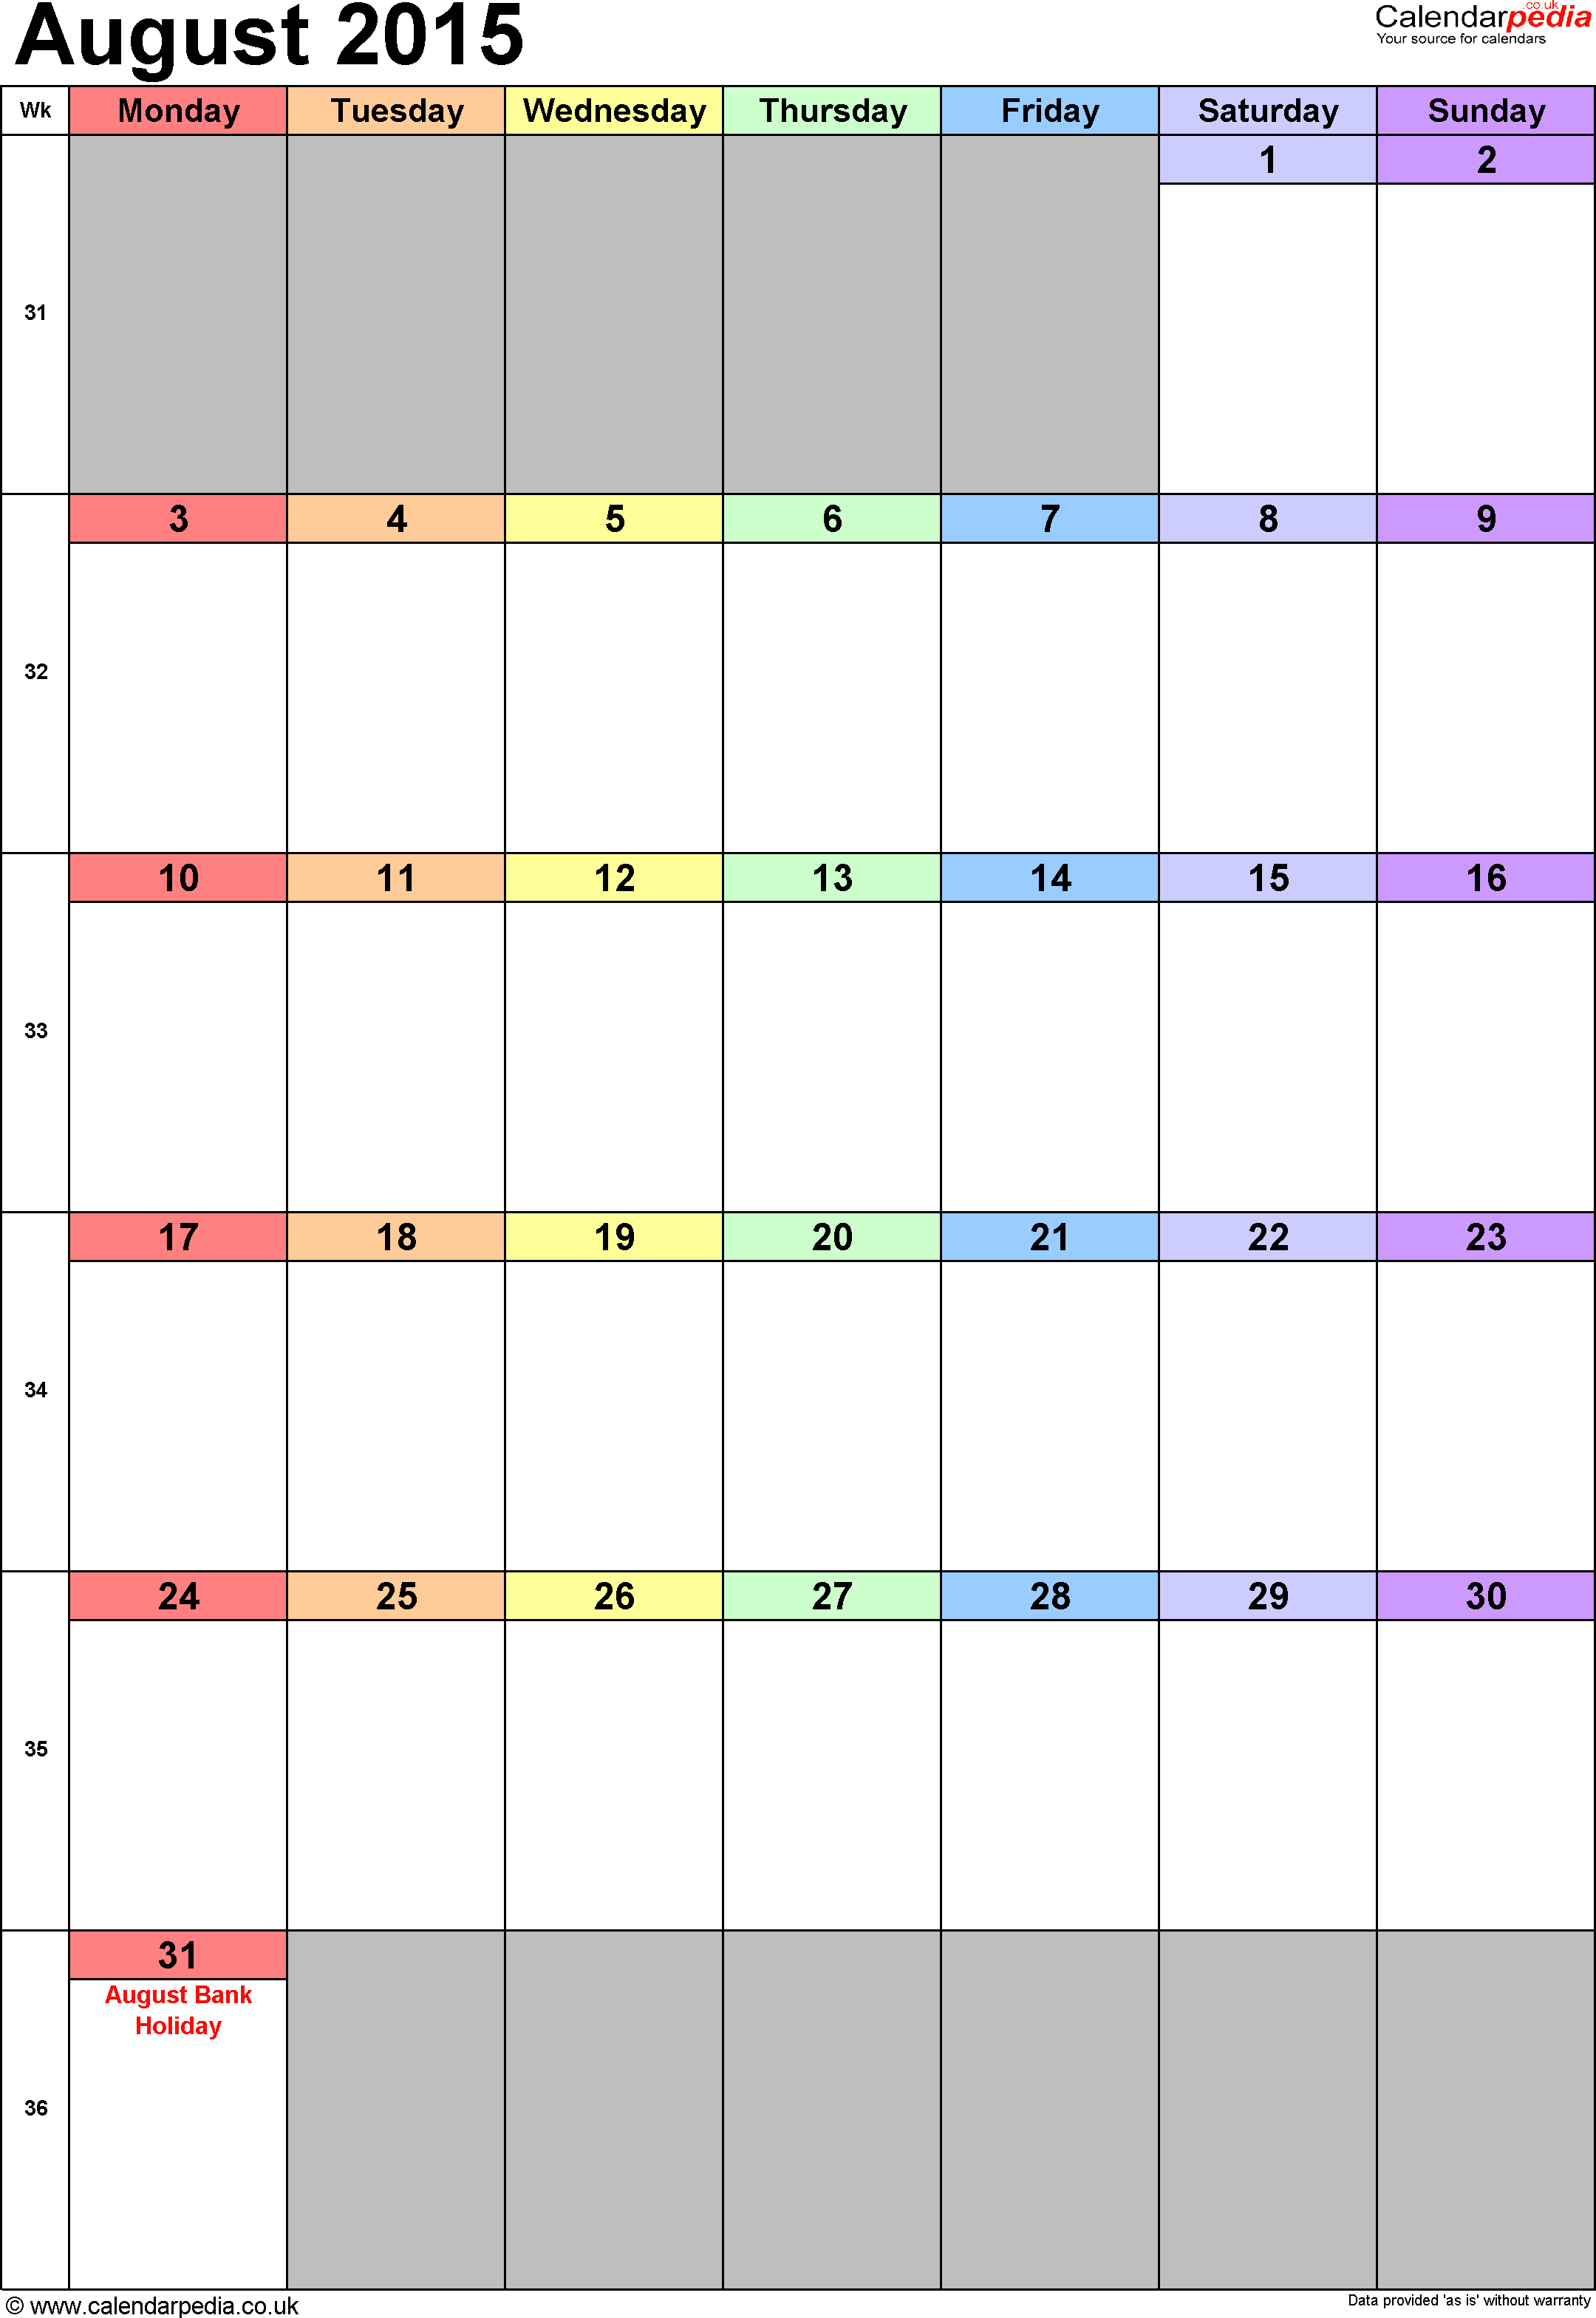 Calendar August 2015 portrait orientation, 1 page, with UK bank holidays and week numbers